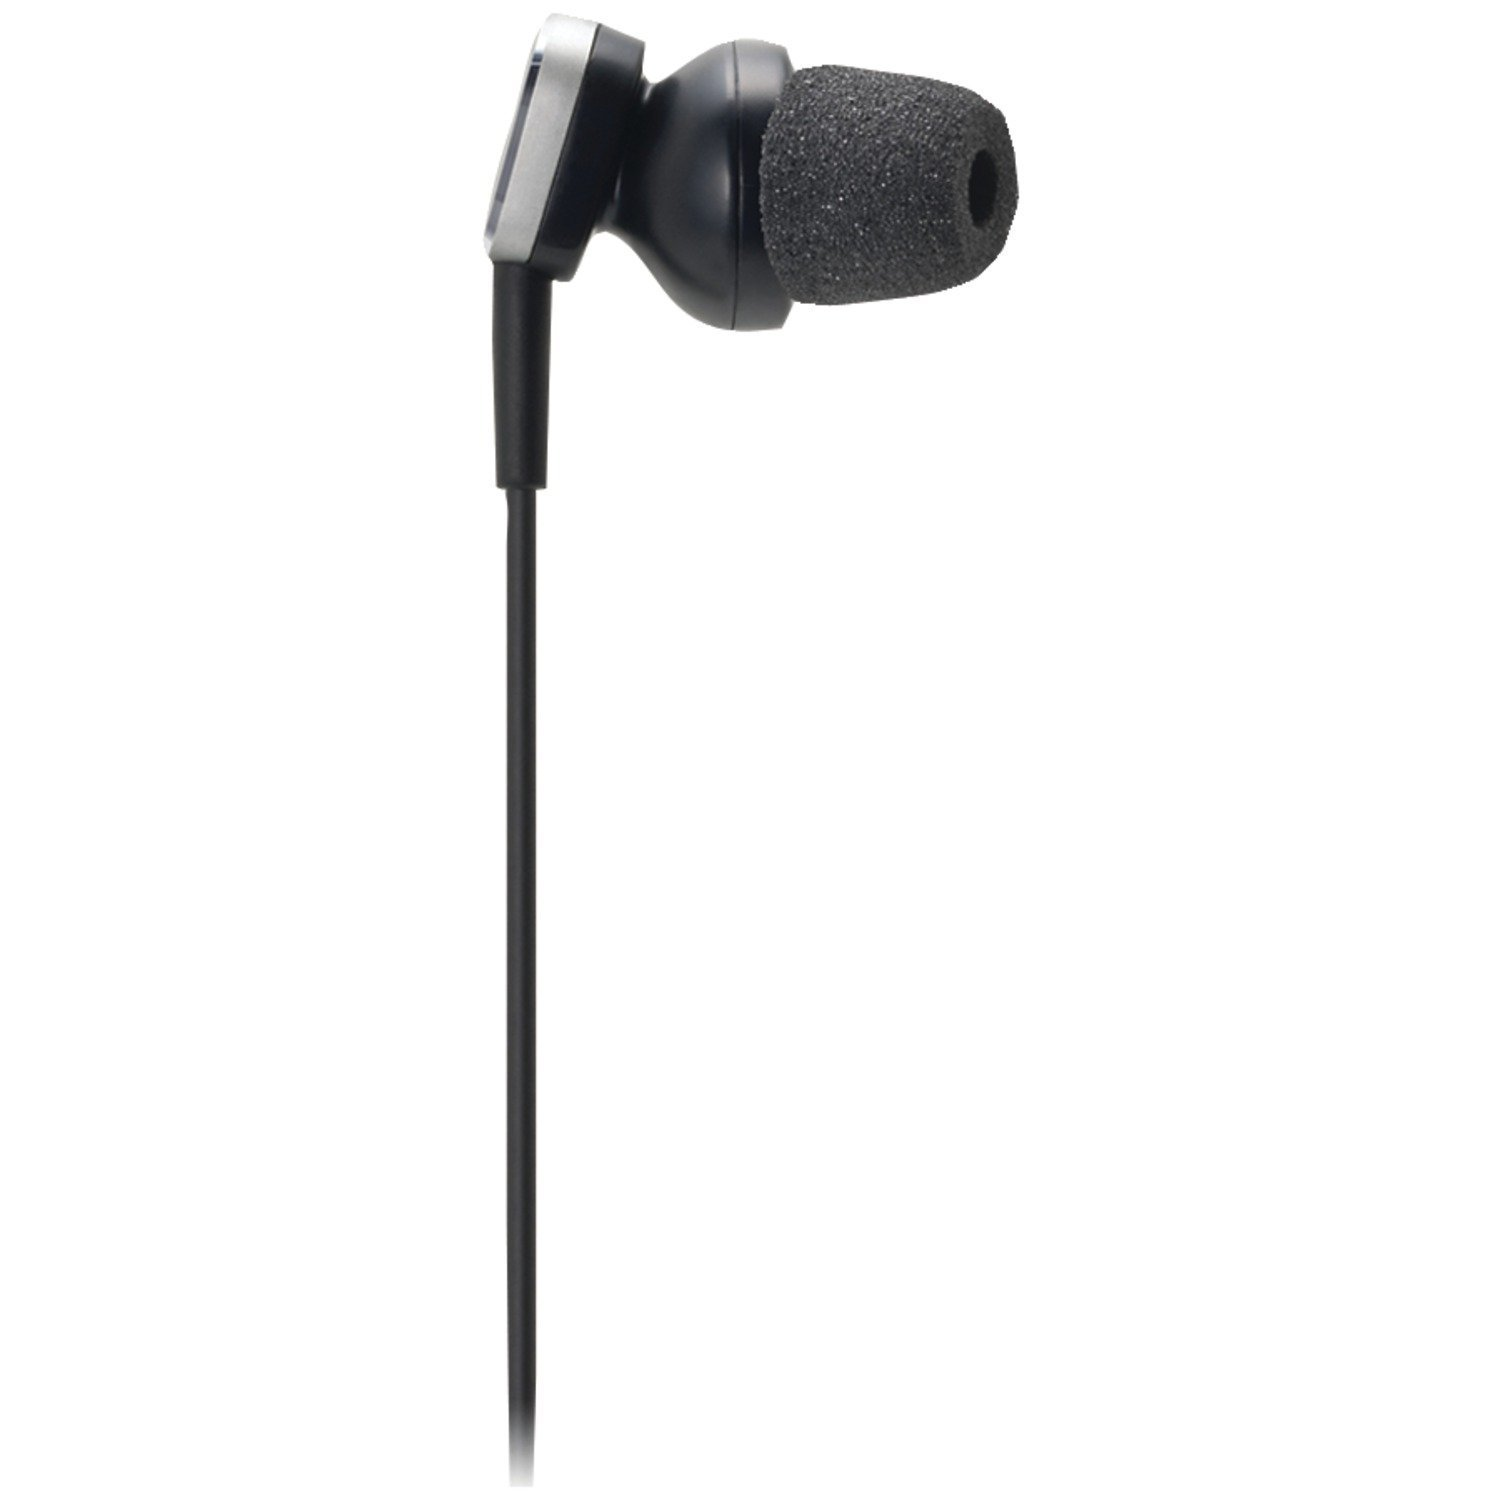 Audio-Technica ATH-ANC23 QuietPoint Active Noise-Cancelling In-Ear Headphones (Certified Refurbished)